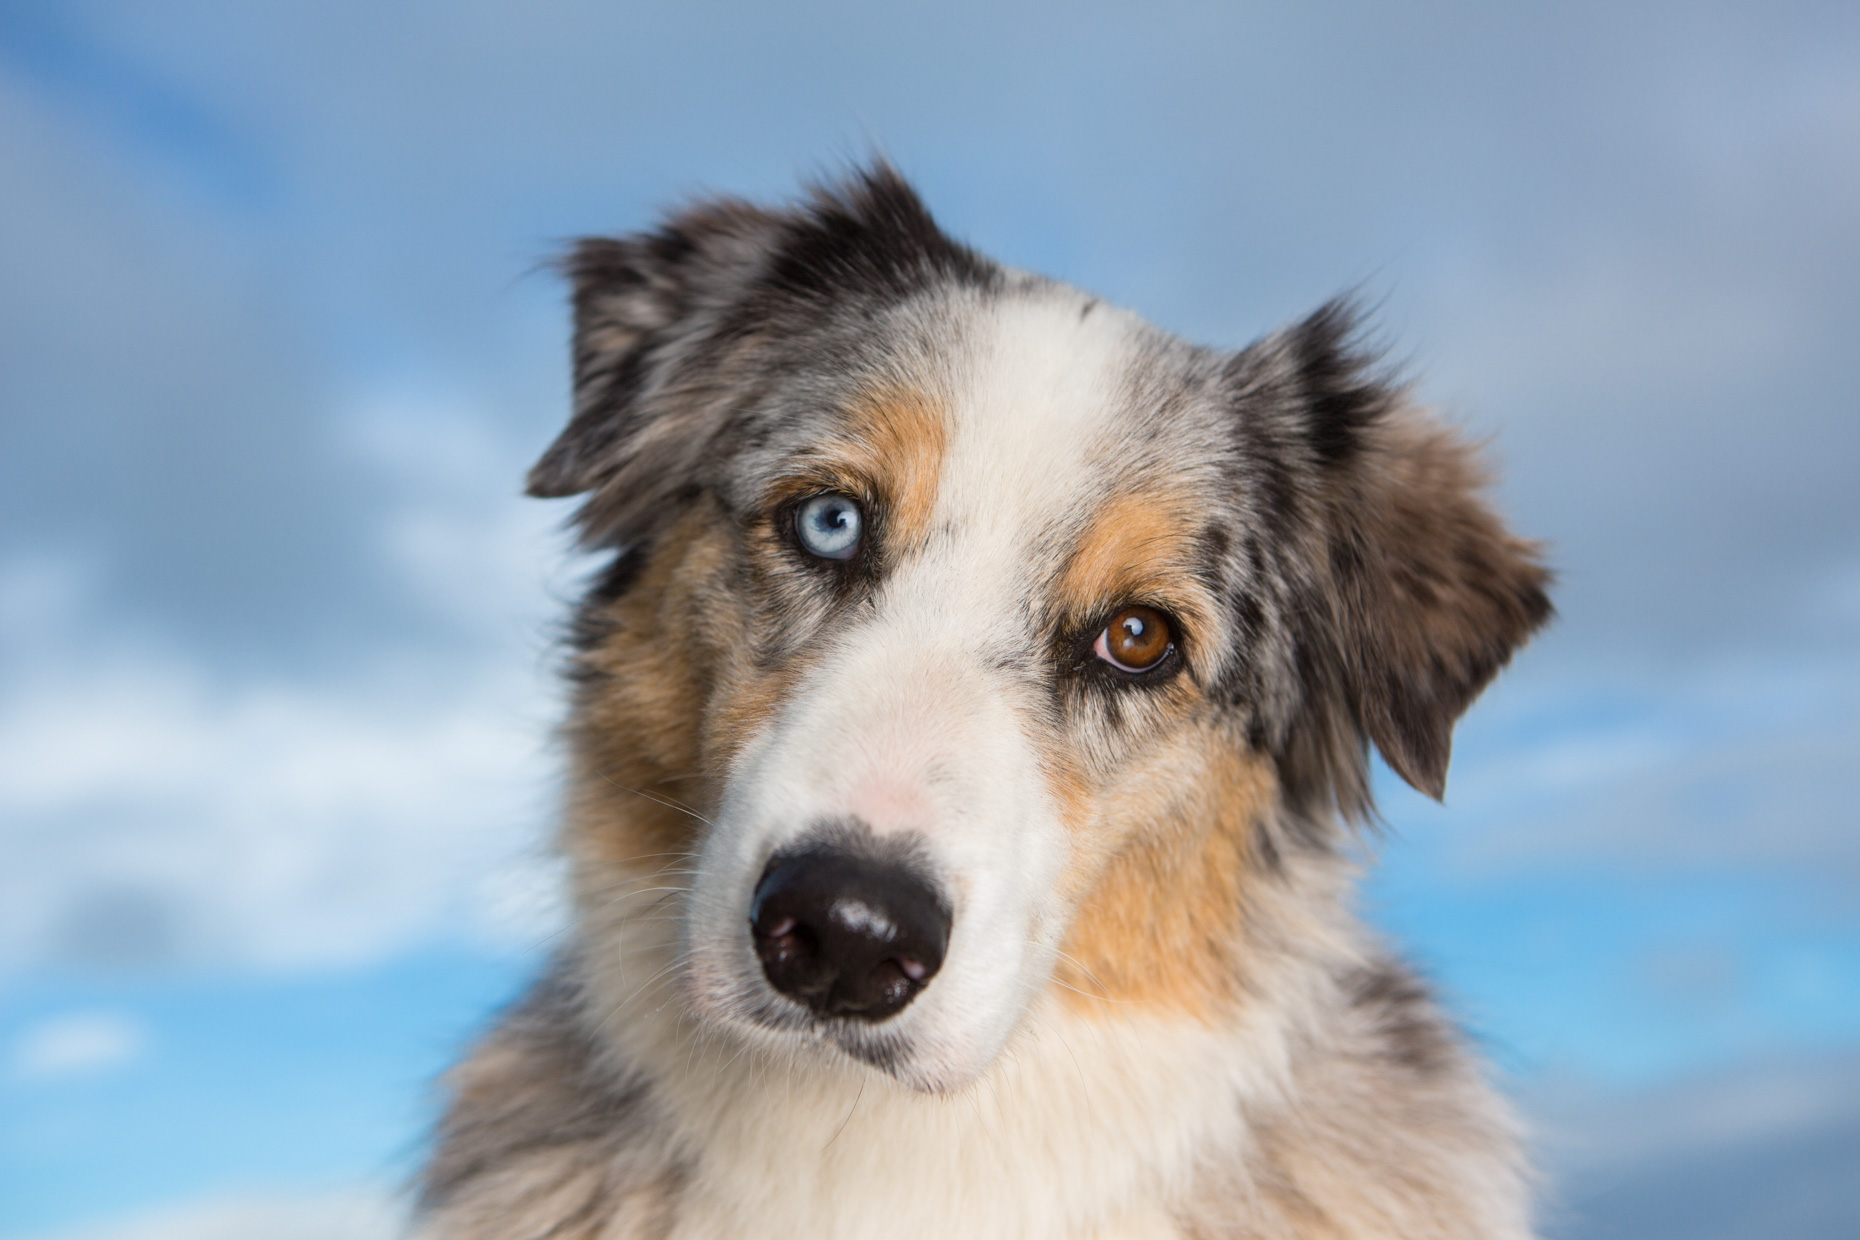 Commercial Dog Photography | Australian Shepherd and Blue Sky by Mark Rogers